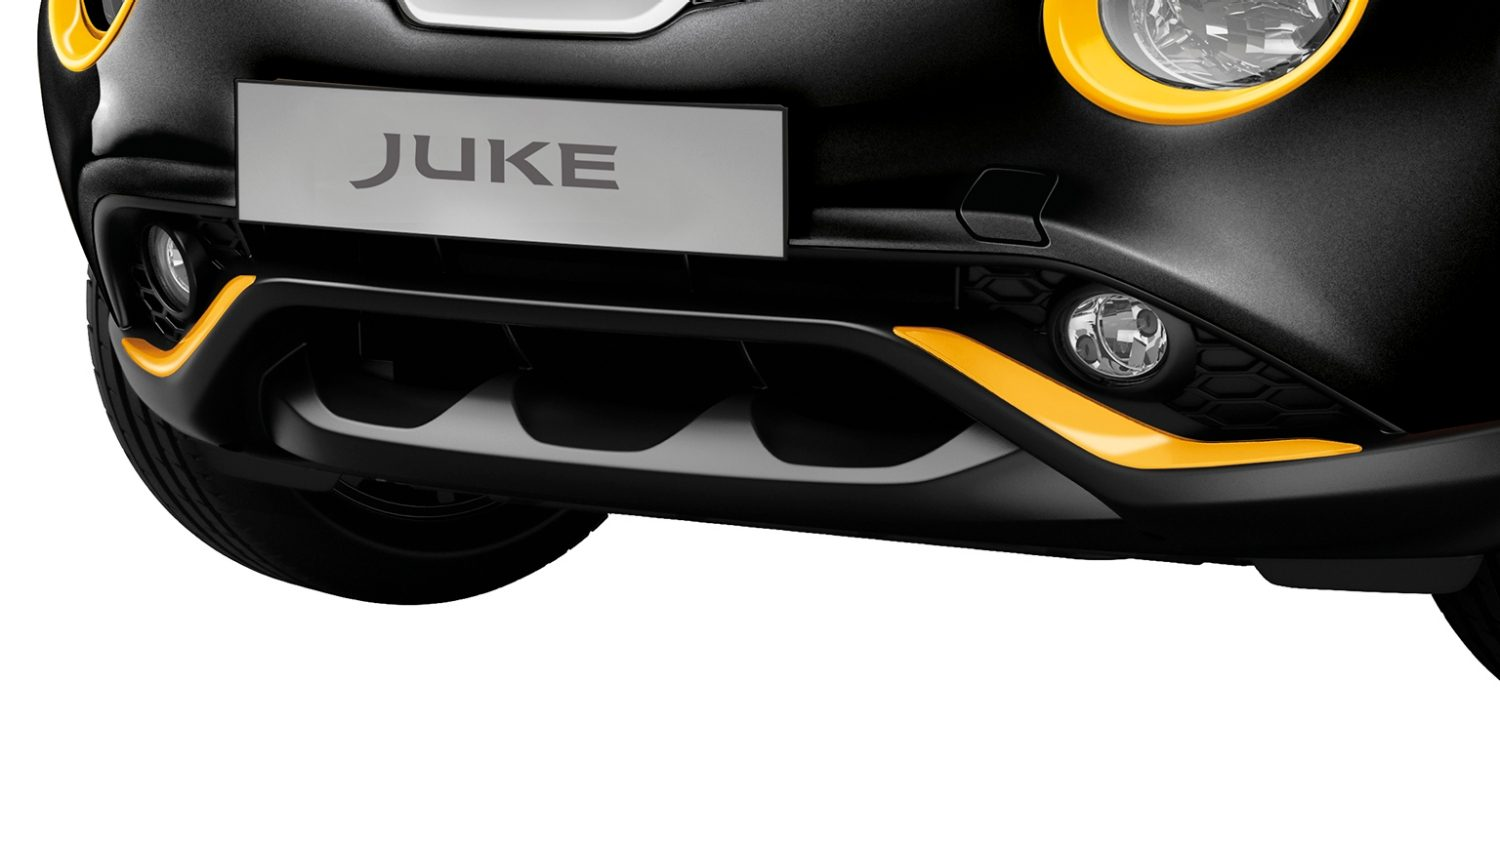 NISSAN Juke - Exterior pack - Front bumper lower panel